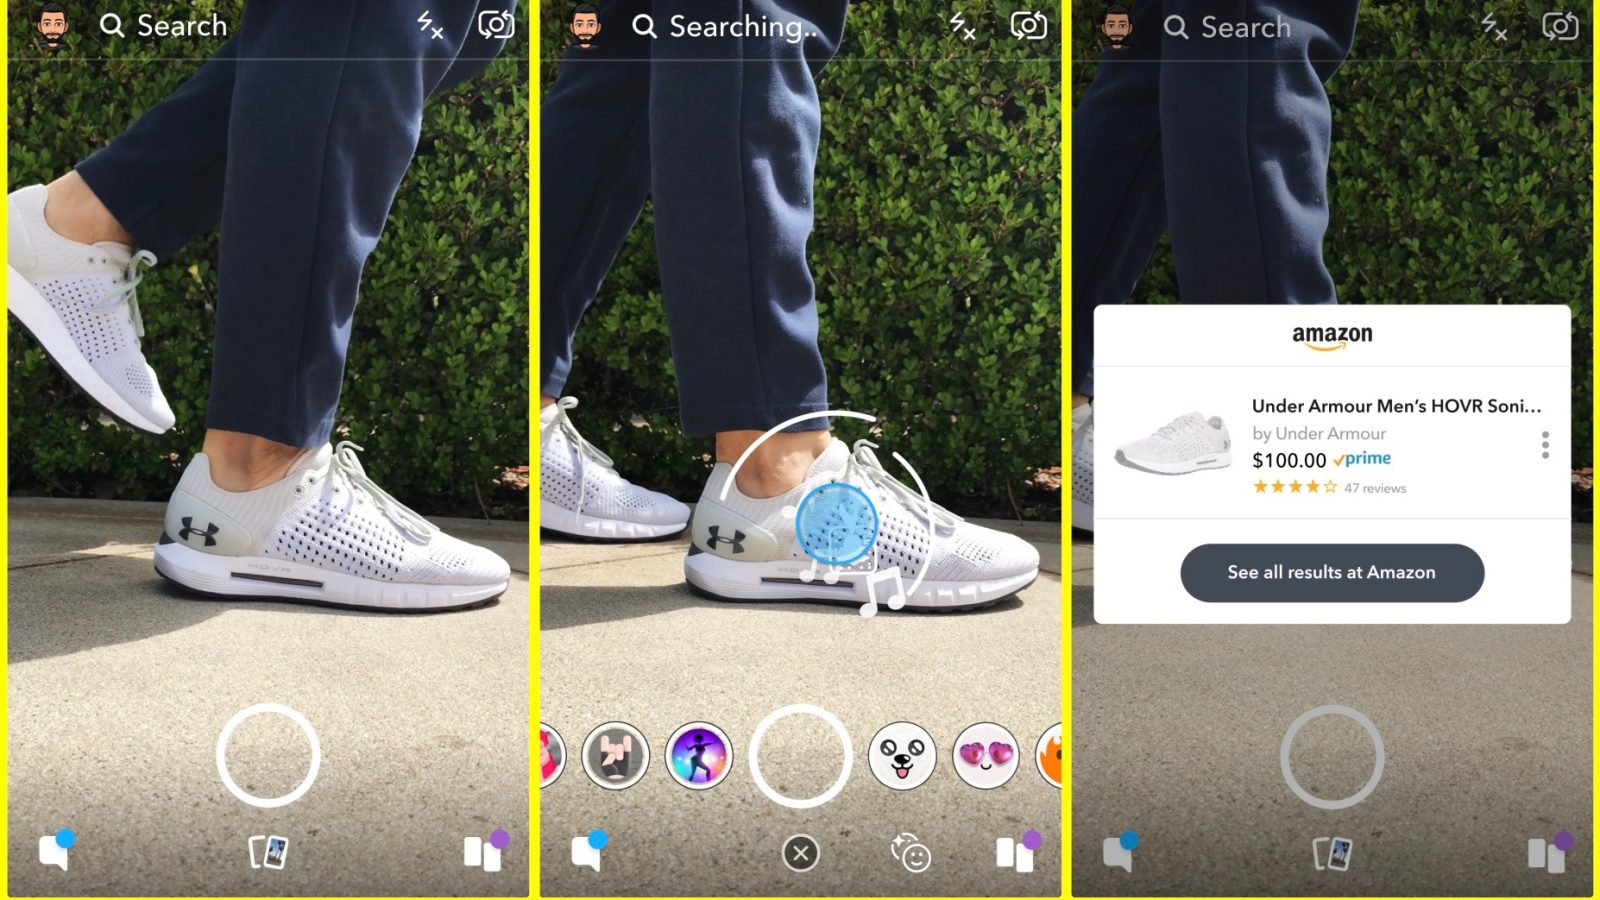 Snapchat has not confirmed it yet, but it seems that visual search camera feature will be introduced for both Android and iOS platforms.